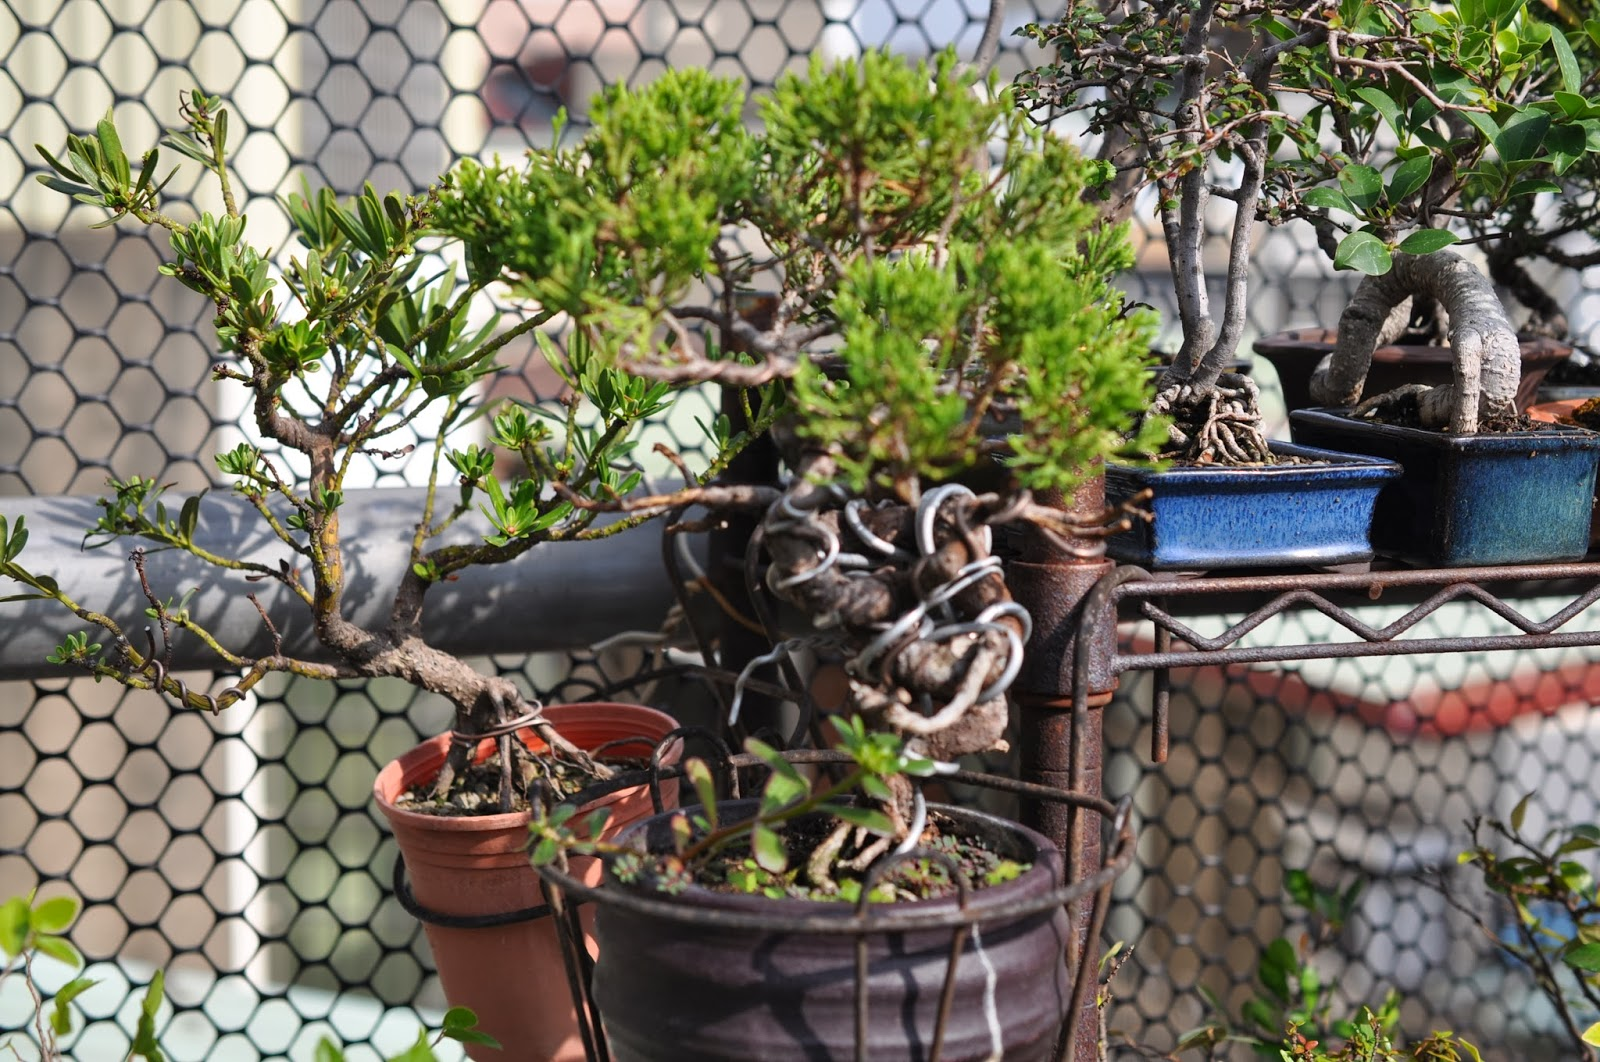 All In One Bonsai And Ceramics Mini Bonsai